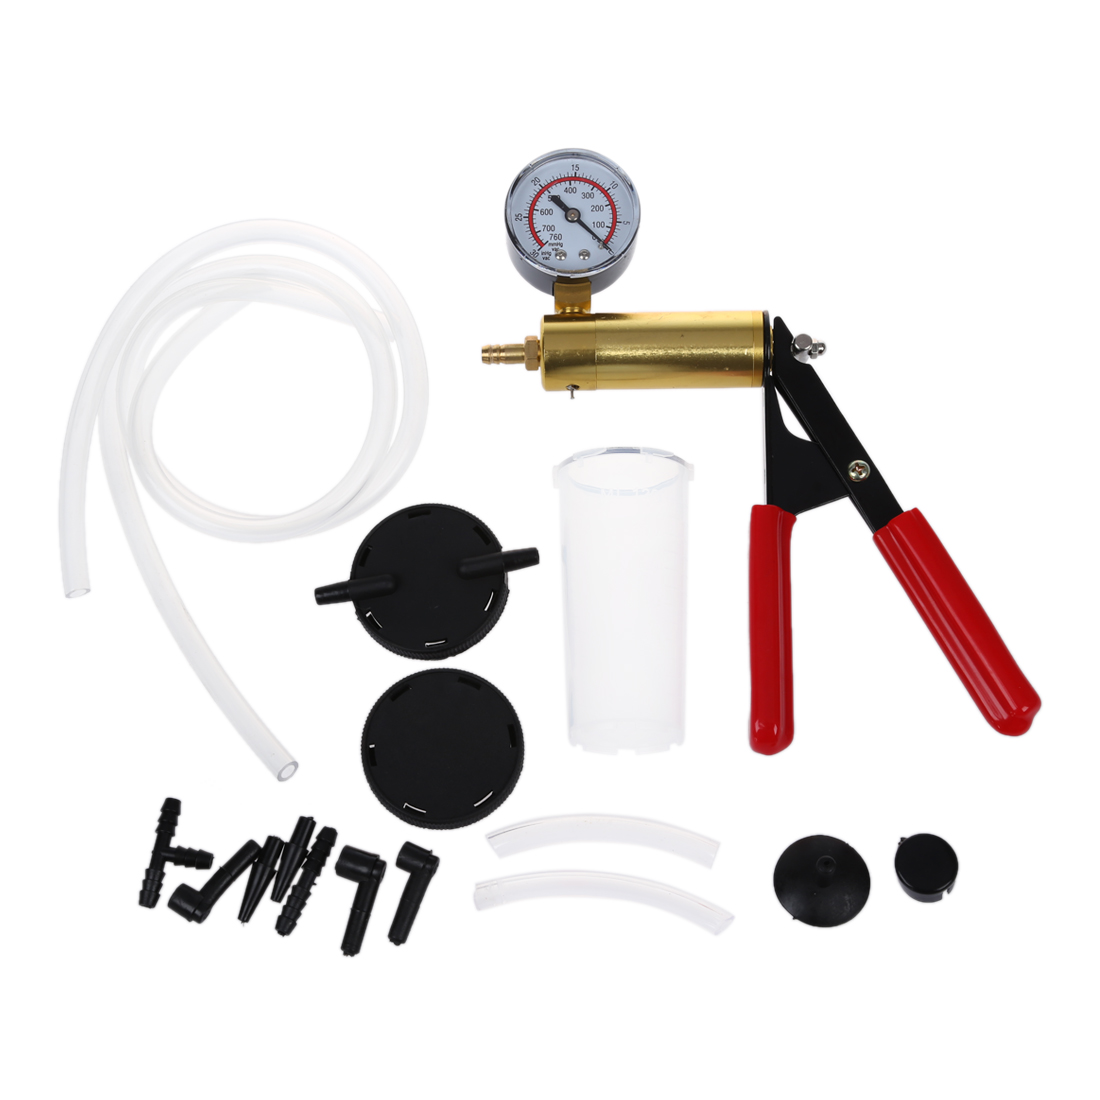 Image 2 - Vacuum Tester, Vacuum Pump Kit, Car Tool, Vacuum Testing Tool and Brake Bleedervacuum pumppump vacuumpump pump -